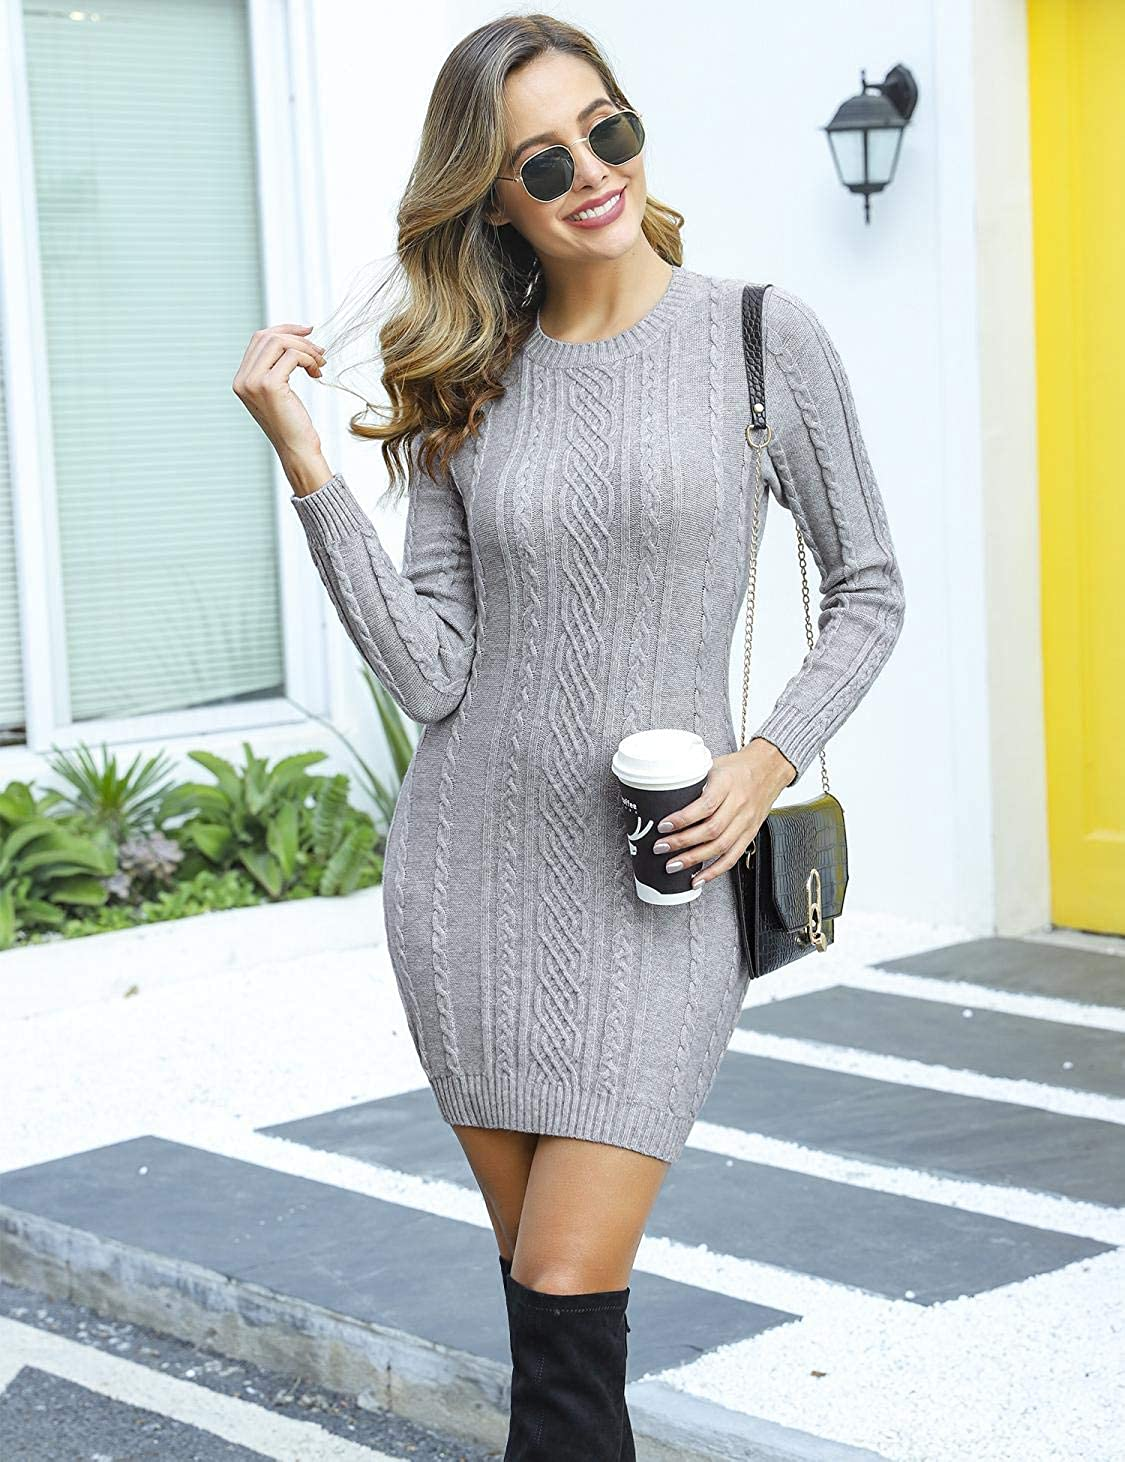 Akalnny Womens Jumper Dress One-Piece Knitted Dress Long Sleeve Slim fit Sweater Ladies Round Neck Dress